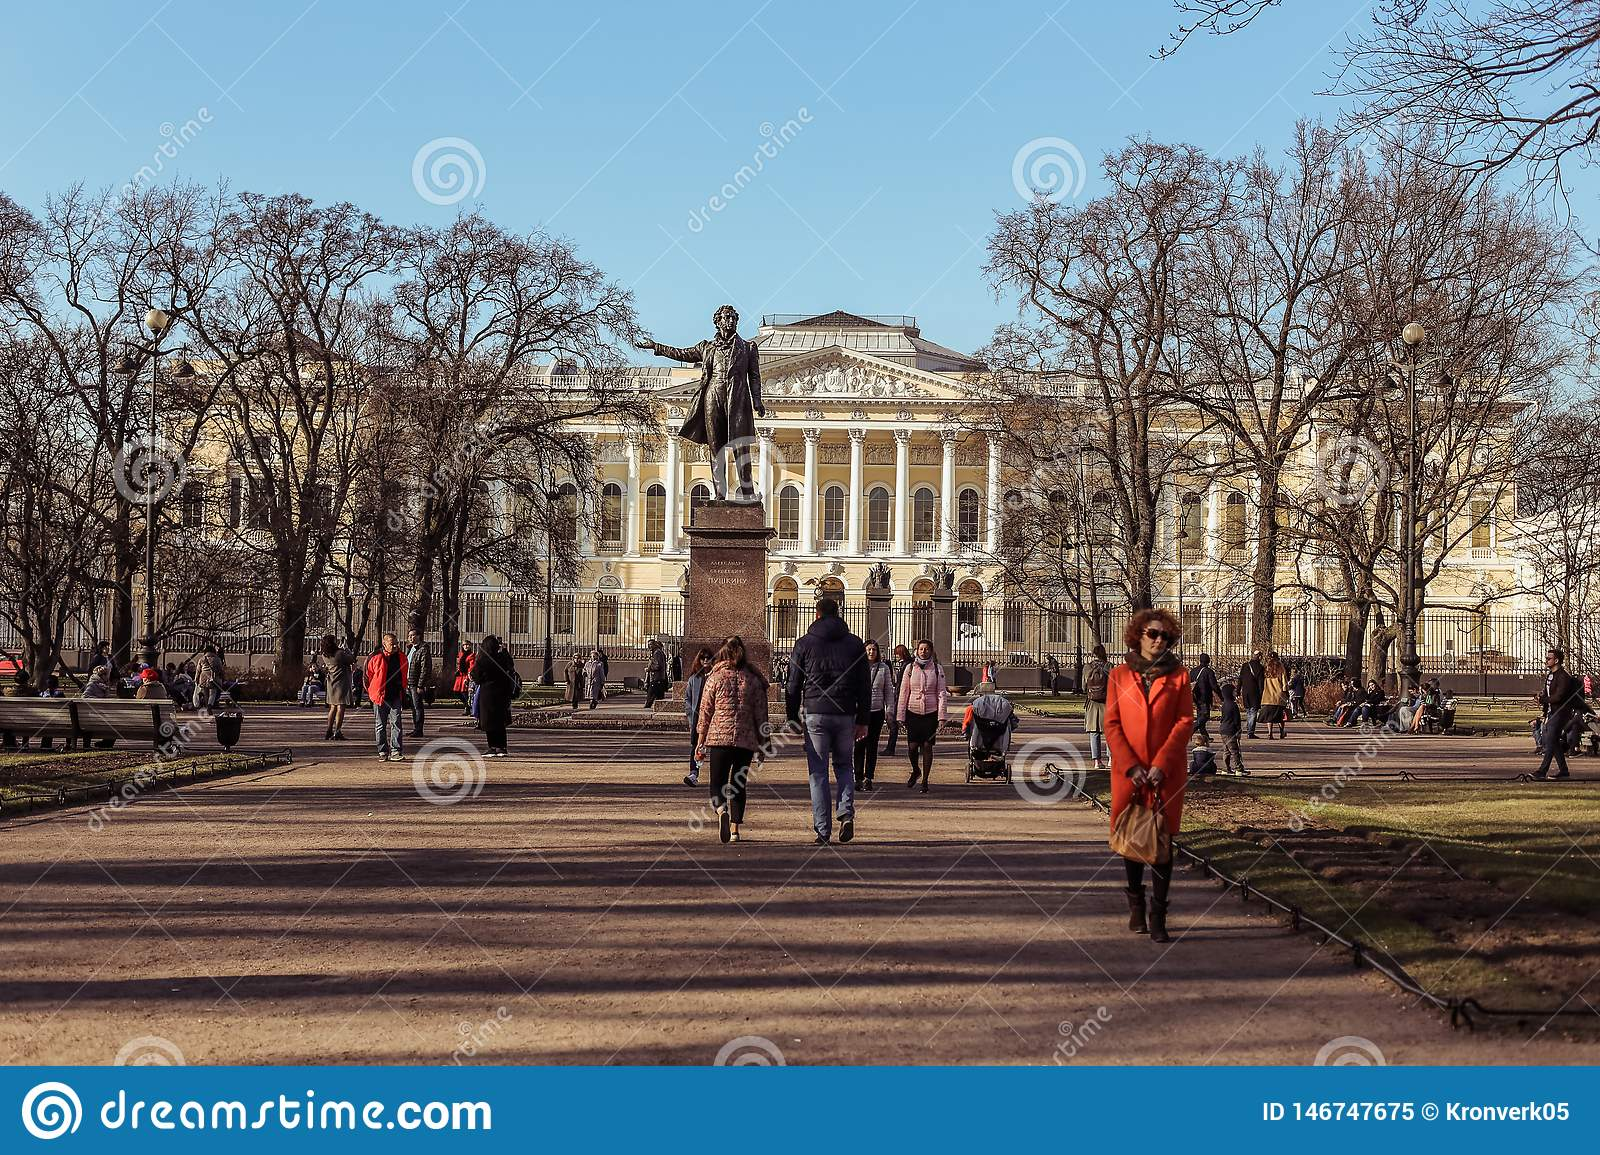 Saint Petersburg, Russia - April 21 2019: children adults walk on the Arts square on a Sunny spring day